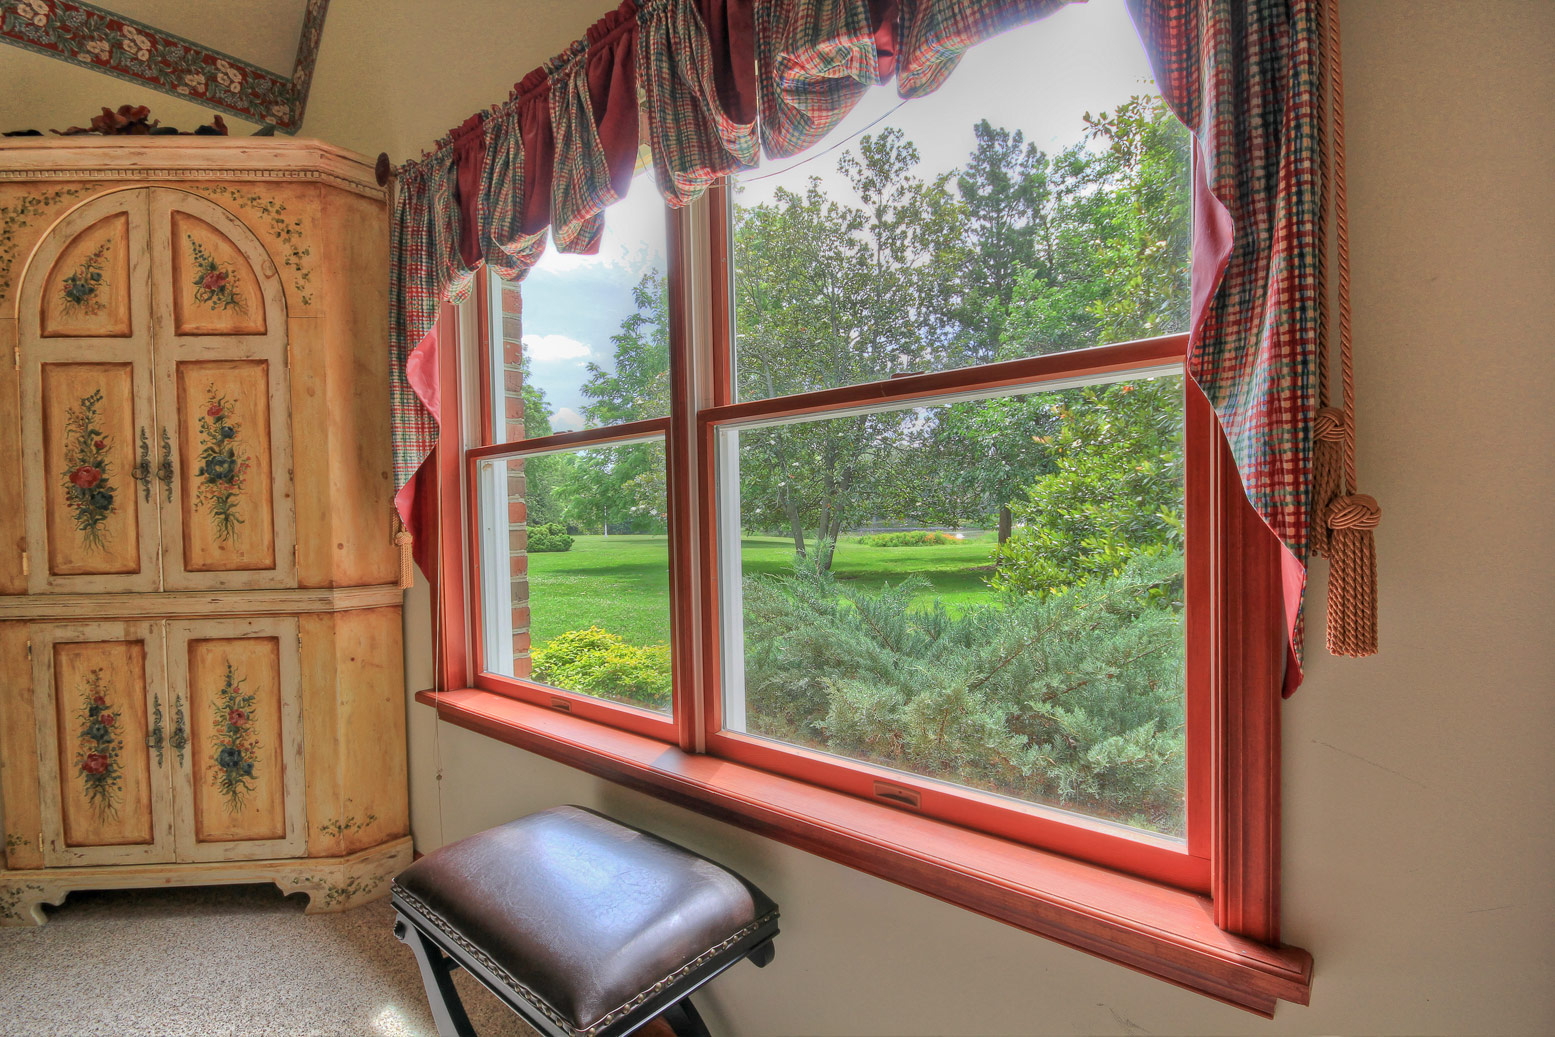 two windows by dresser in eden room overlooking grass and trees at combsberry inn